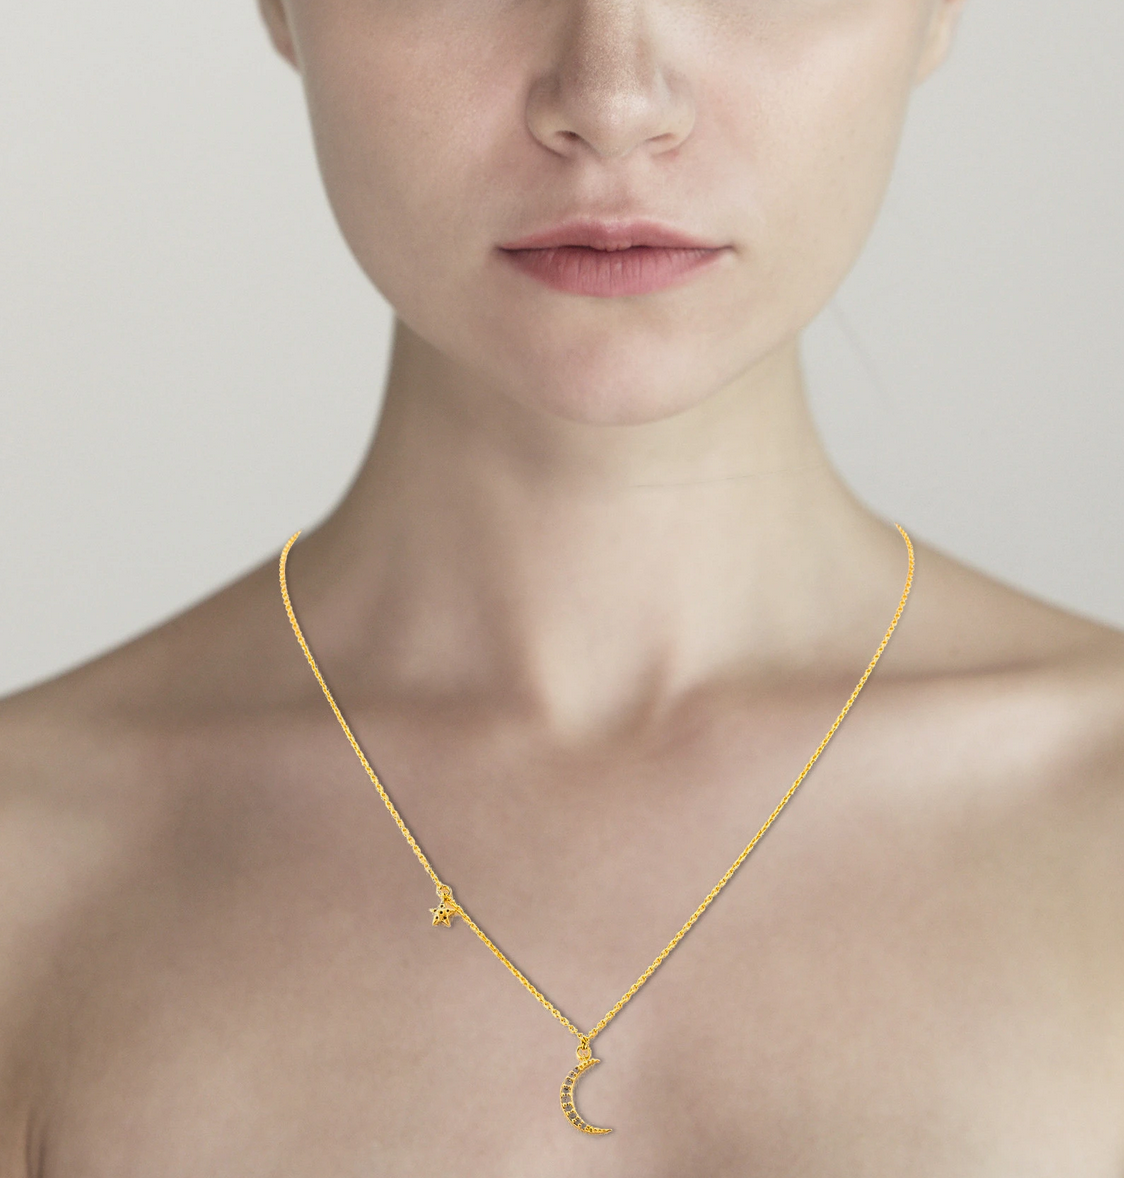 tai Simple gold necklace with celestial charms